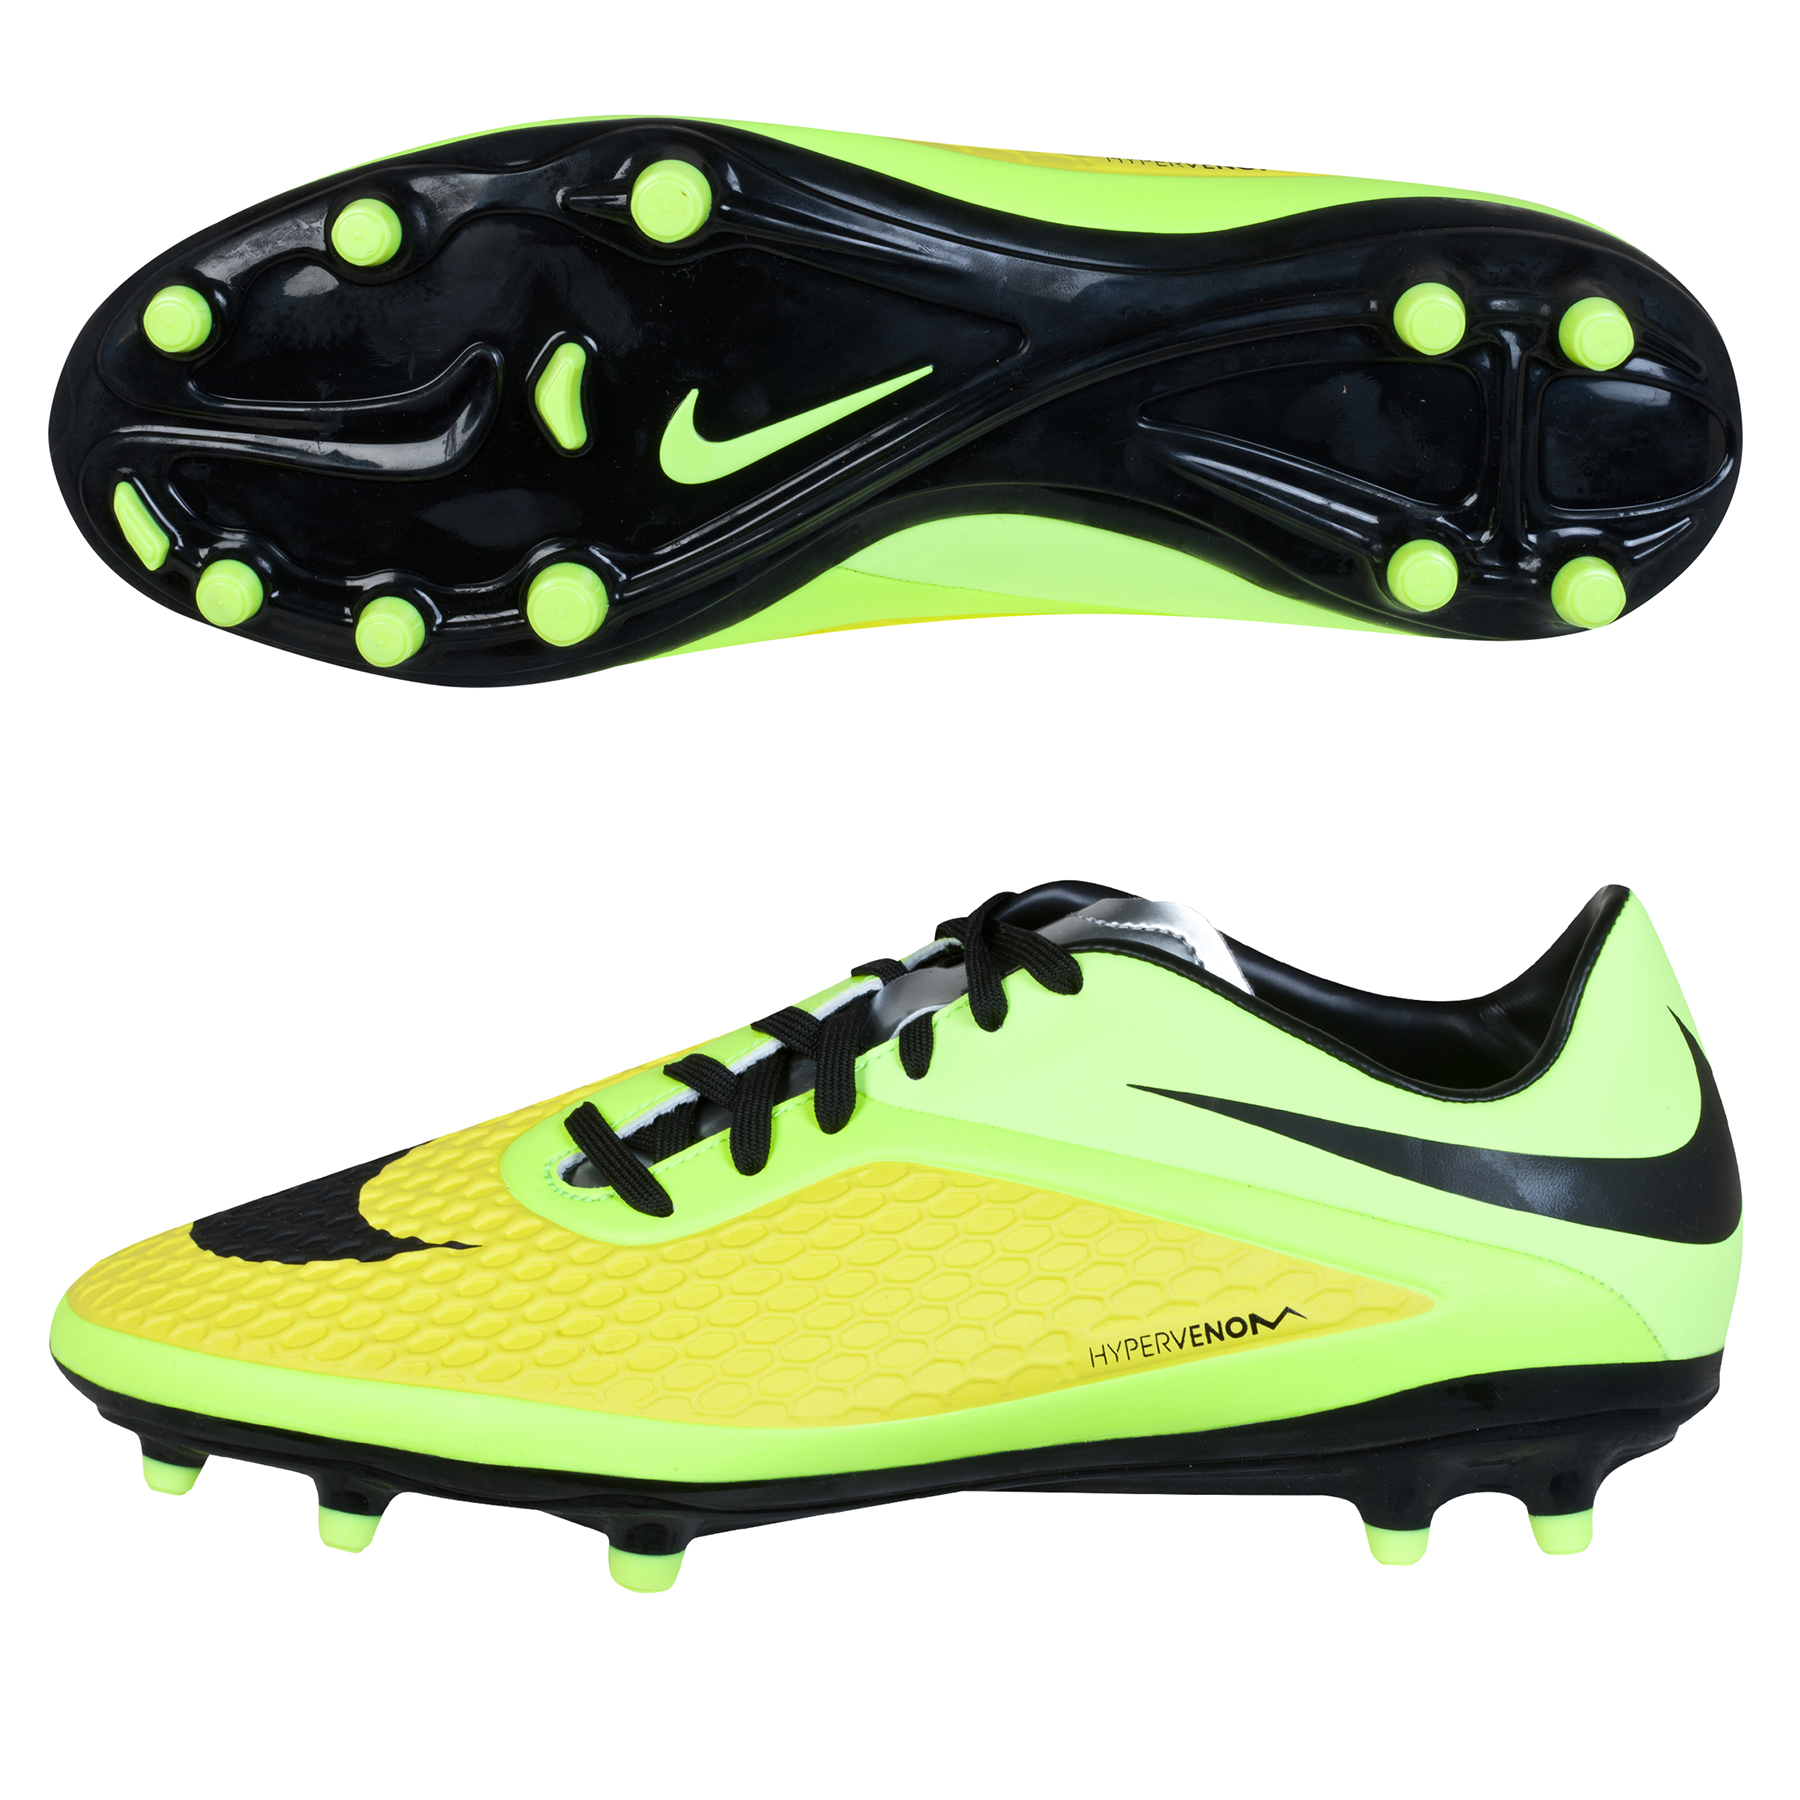 Nike Hypervenom Phelon Firm Ground Football Boots Yellow